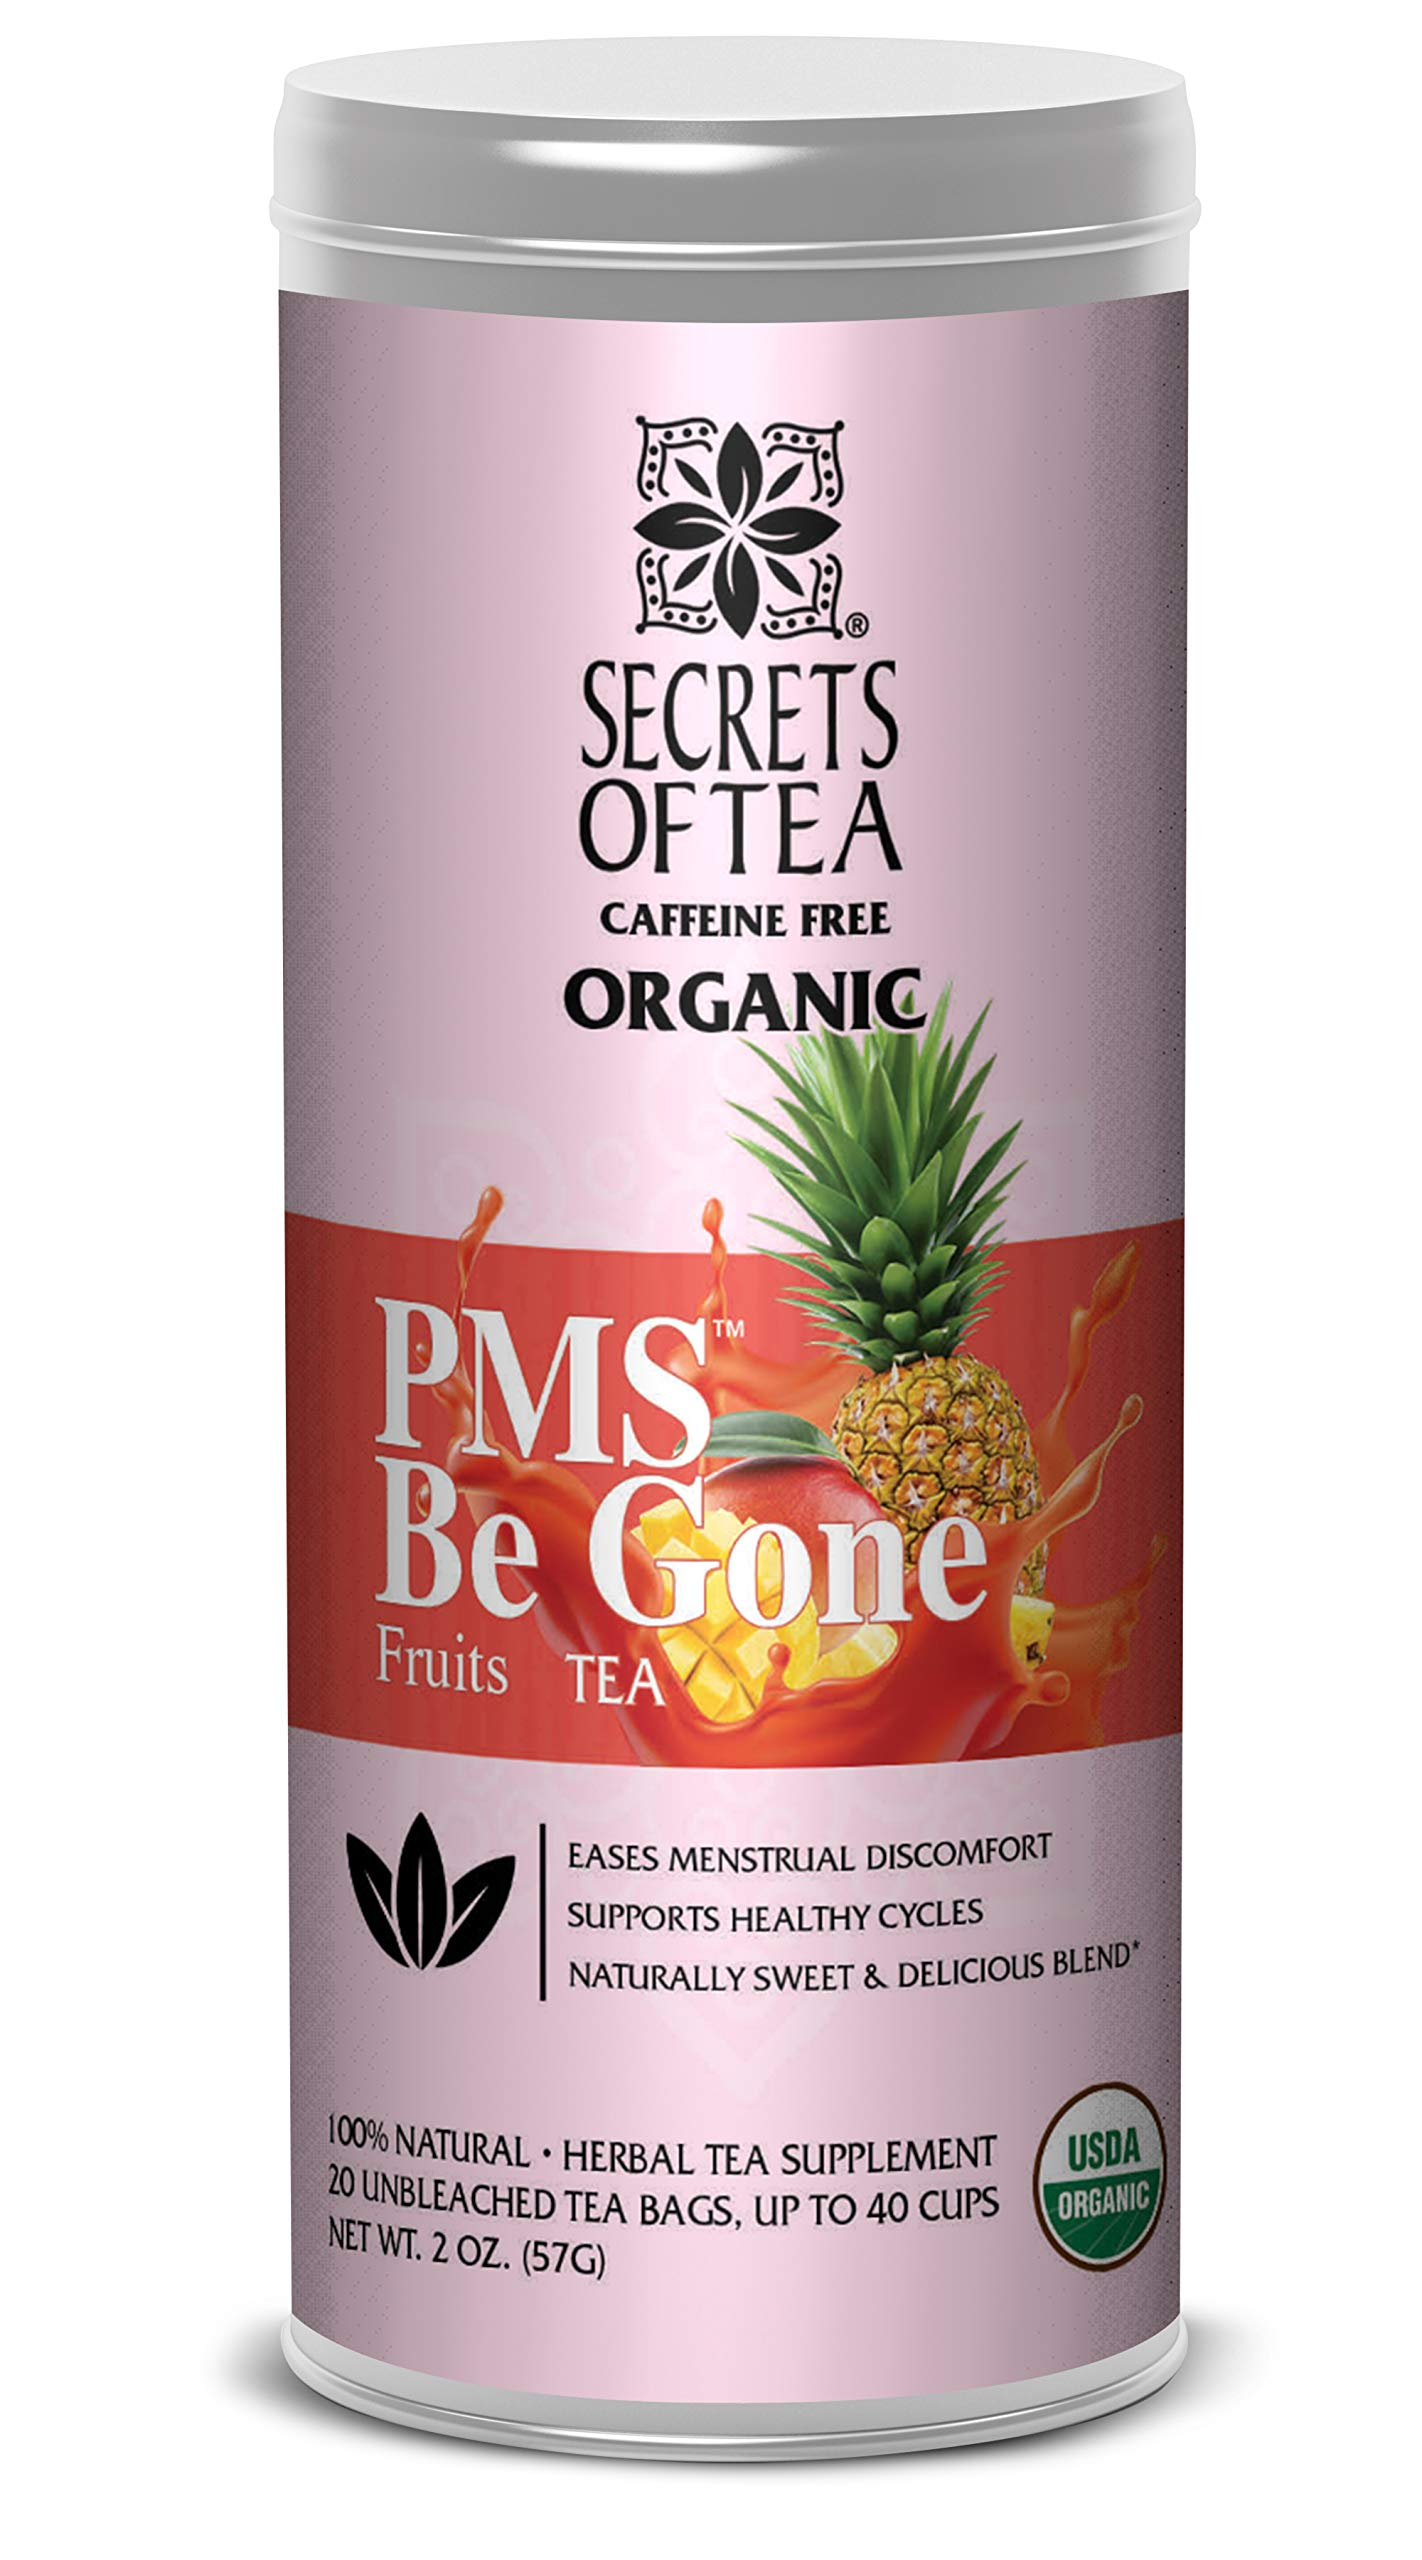 Secrets of Tea PMS BE Gone Fruit Tea: PMS Relief Tea USDA Organic Loose Leaf in 20 Biodegradable Sachets, Eases Discomfort & Supports Healthy Cycle, 40 Servings, USDA Organic, Caffeine Free